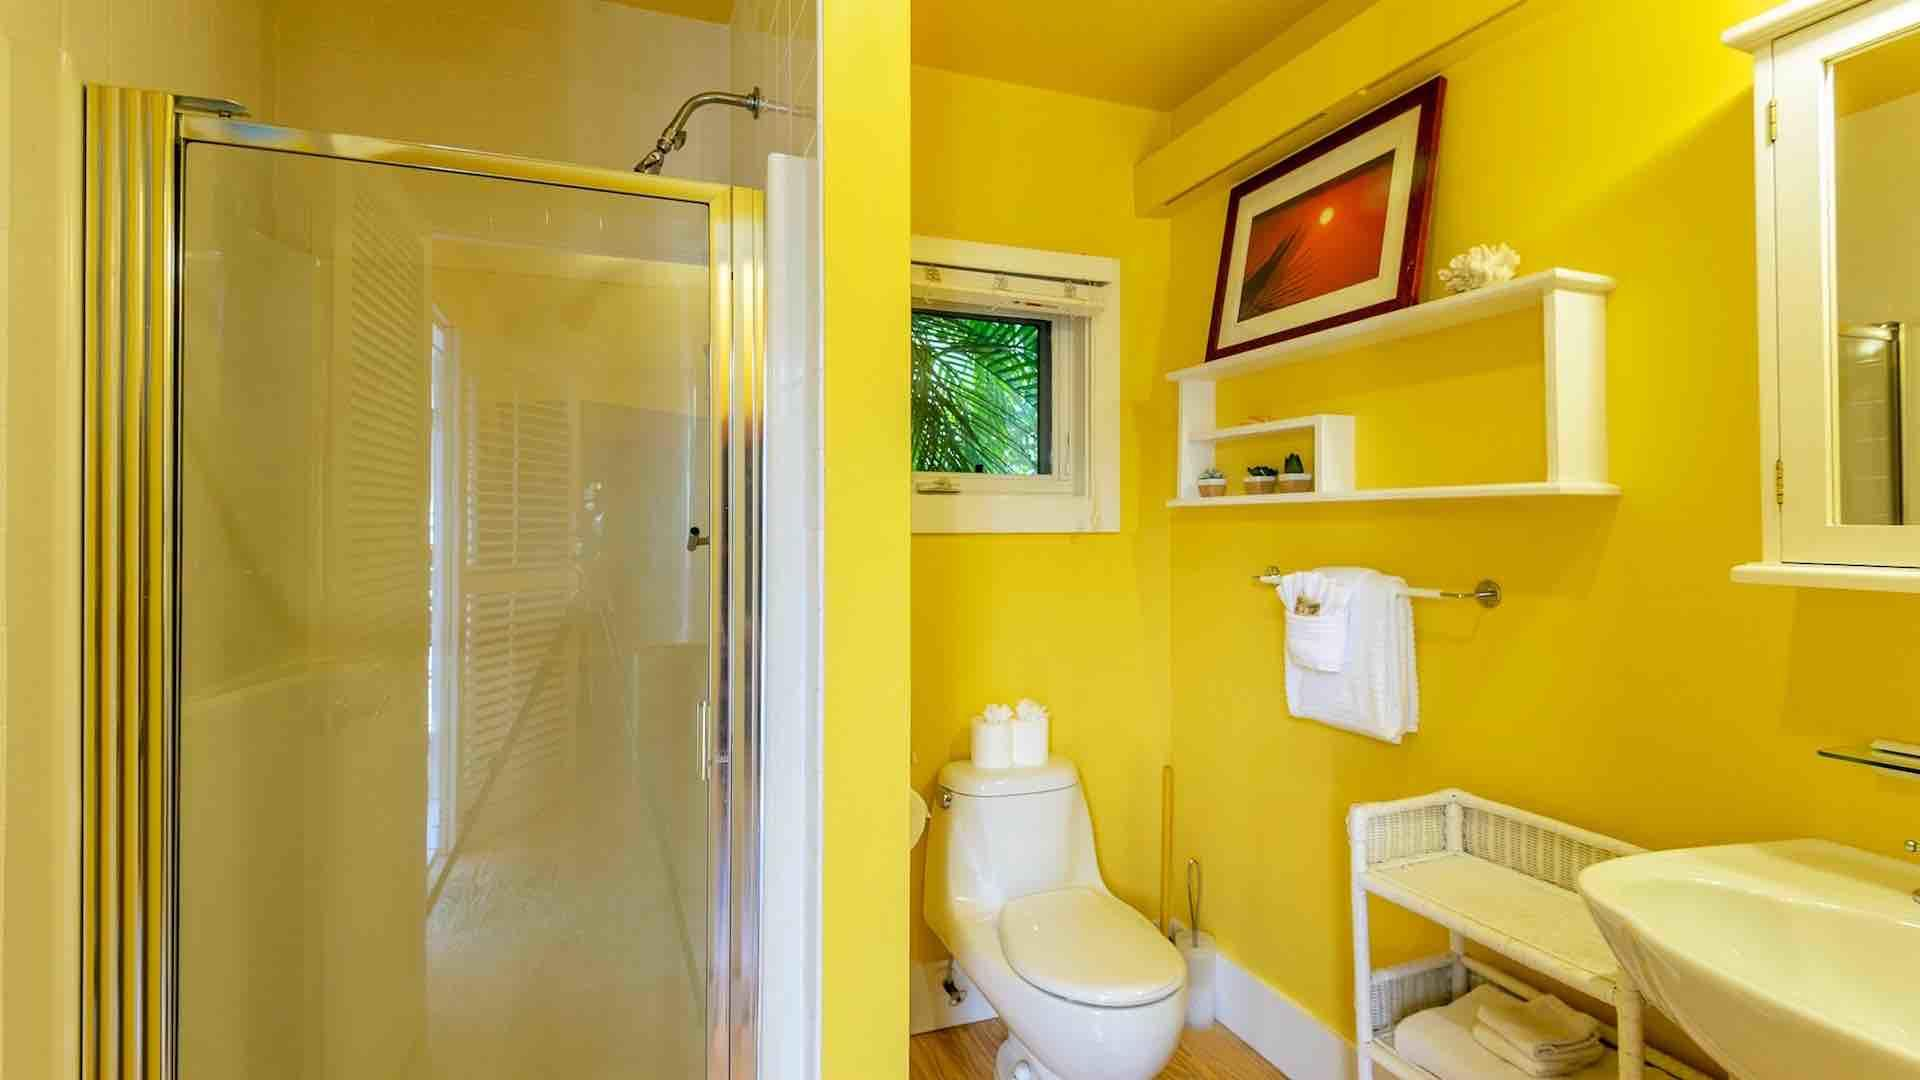 The guest house bathroom has a pedestal sink and shower with glass door.